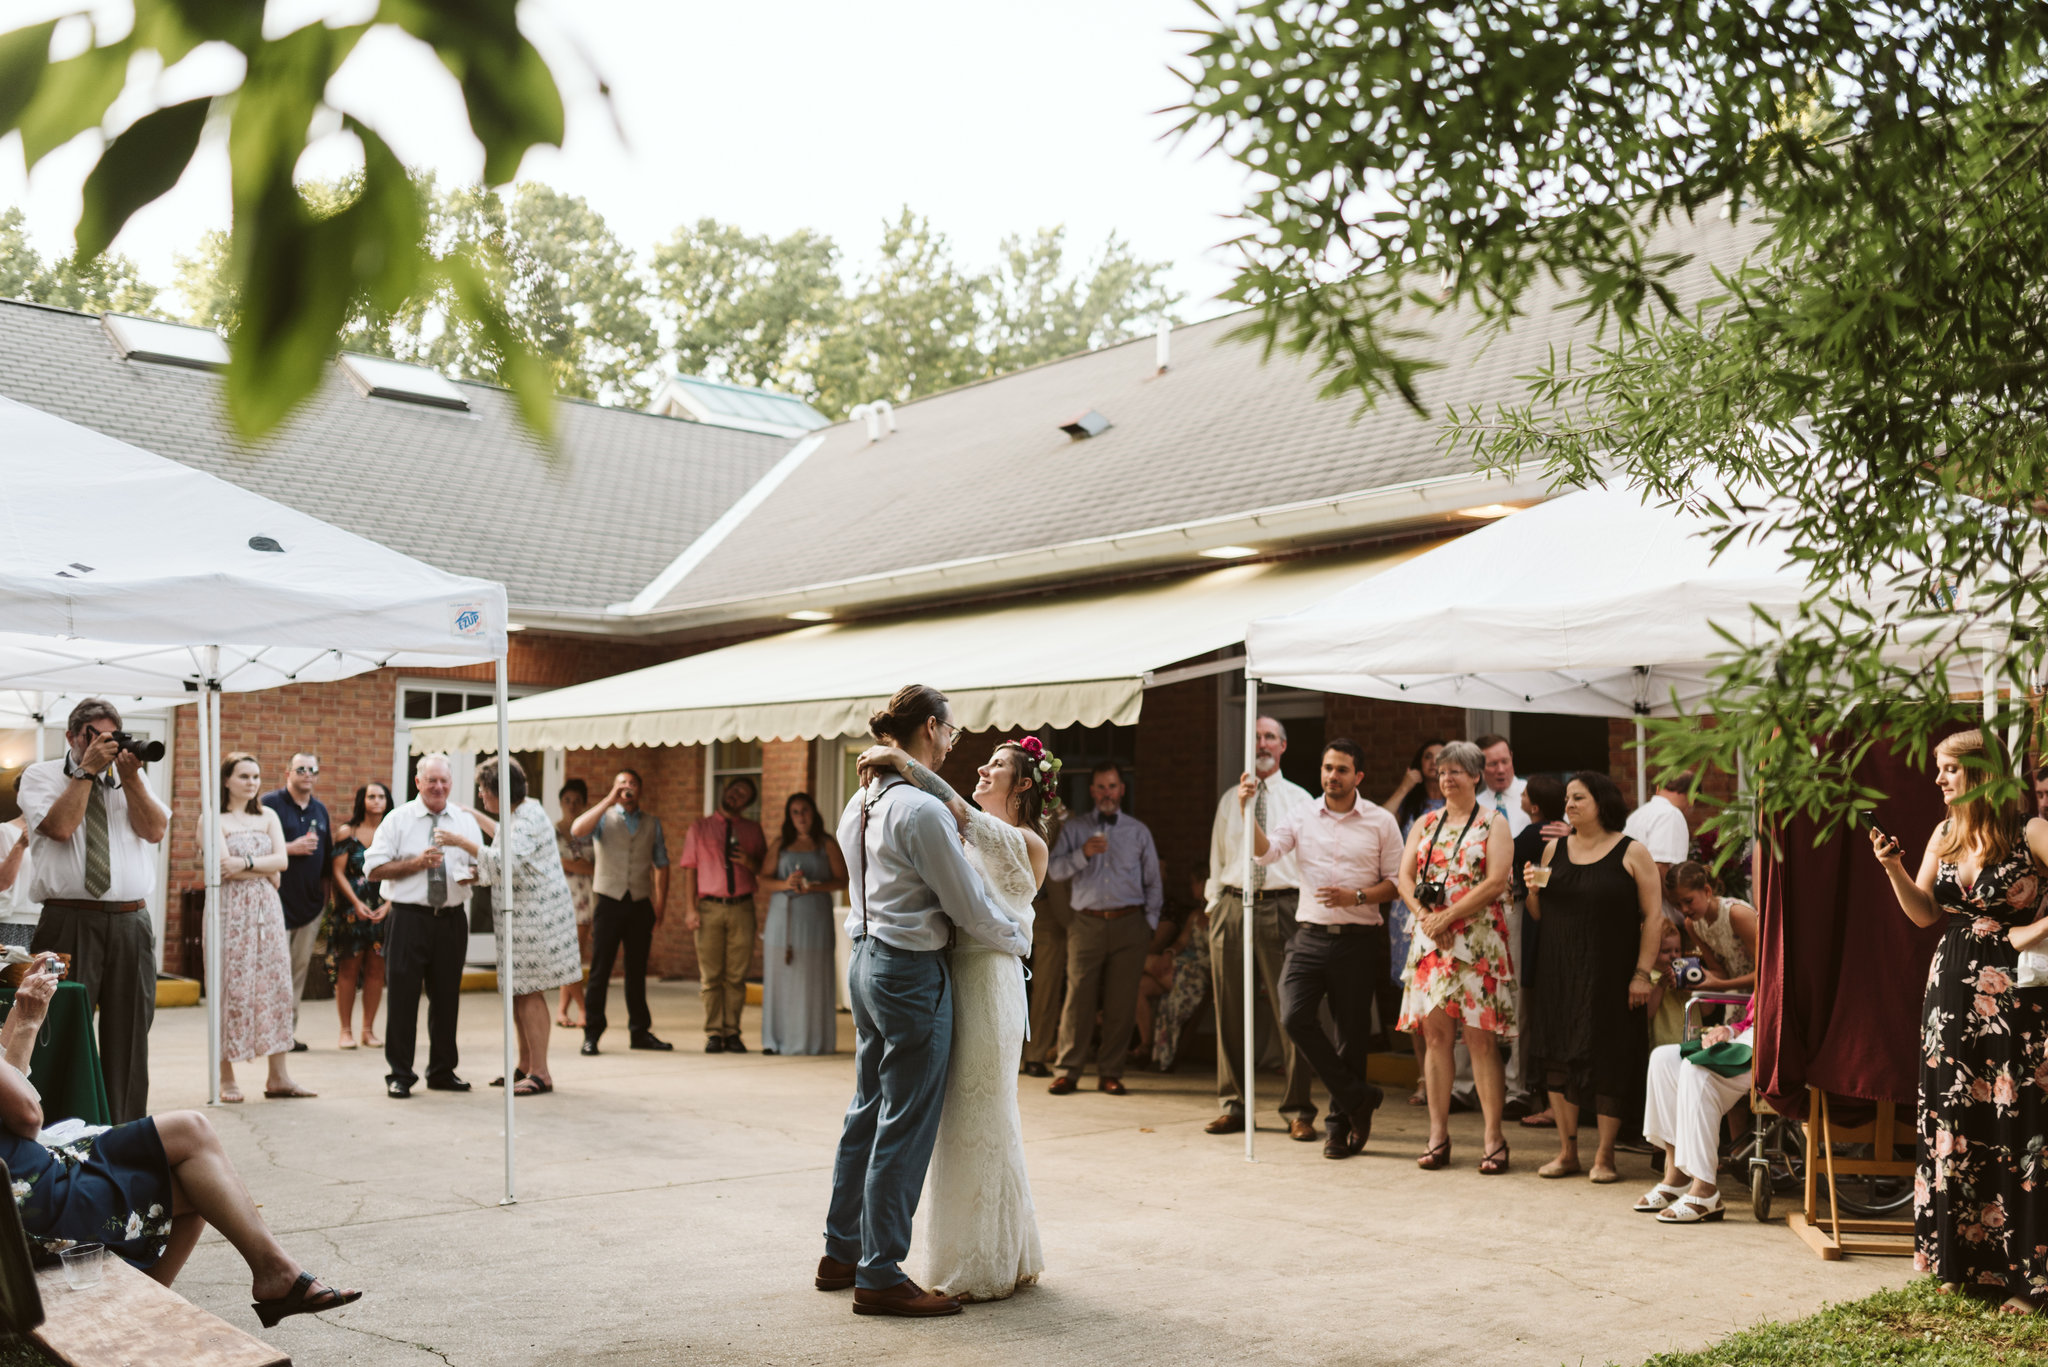 Annapolis, Quaker Wedding, Maryland Wedding Photographer, Intimate, Small Wedding, Vintage, DIY, Bride and Groom Have First Dance Outside, Guests Watch First Dance